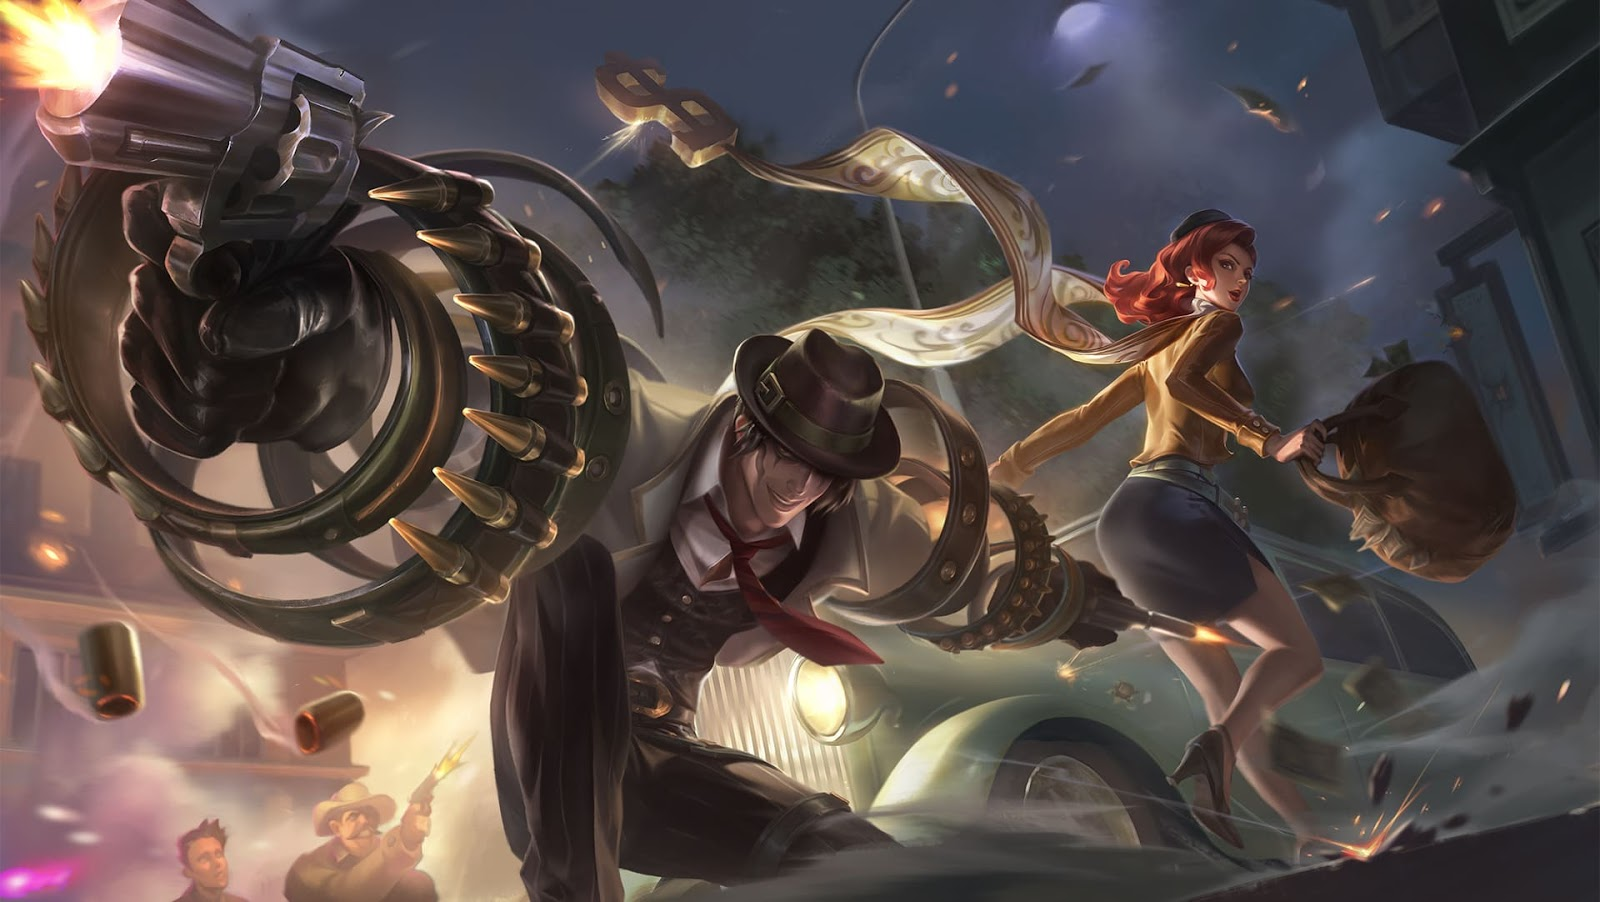 Wallpaper Khufra Gentleman Thief Skin Mobile Legends HD for PC